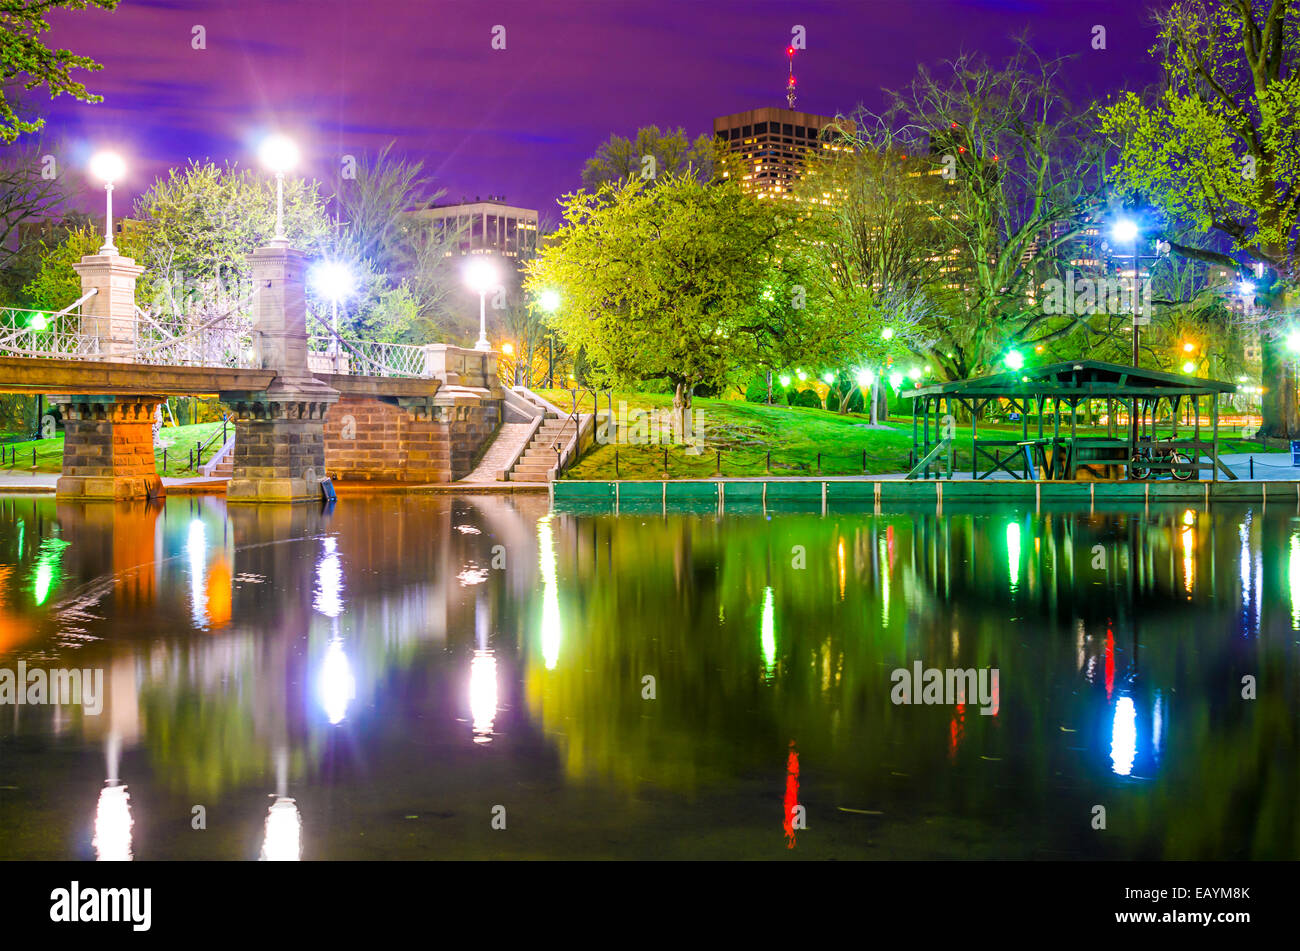 Lagoon Bridge and skyline of Boston, Massachusetts from the Boston Public Gardens. Stock Photo